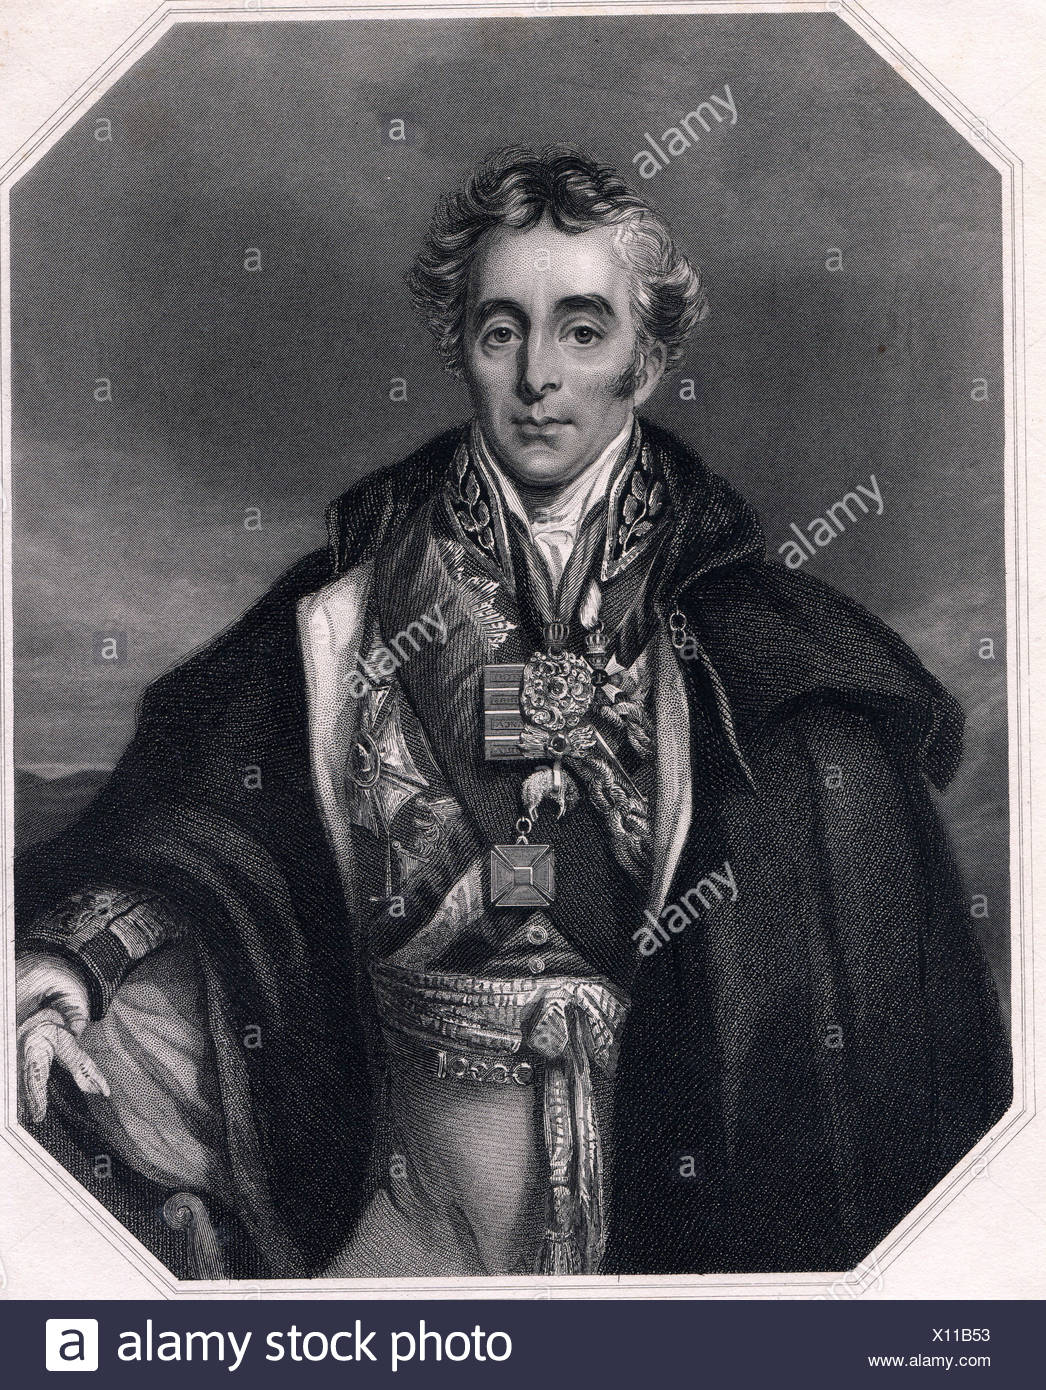 Wellington, Arthur Wellesley, 1st Duke of, 1.5.1769 - 14.9.1852, British field marshal, politician, half length, steel engraving by H. Cook after a drawing by R. Scanlan, 19th century, Artist's Copyright has not to be cleared - Stock Image